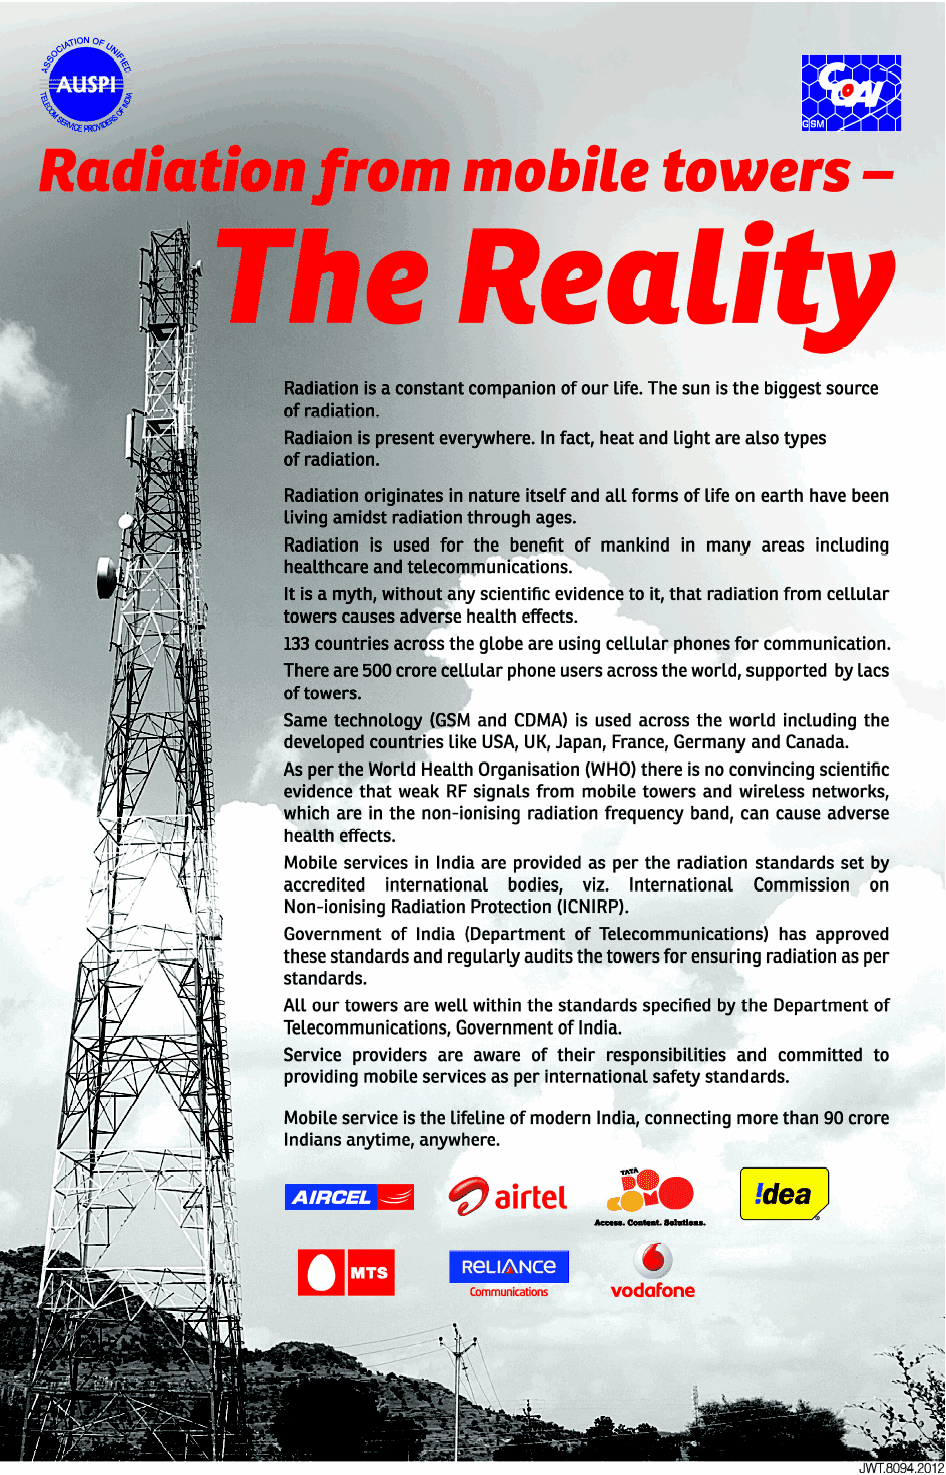 Twenty22-India on the move: Mobile tower radiation